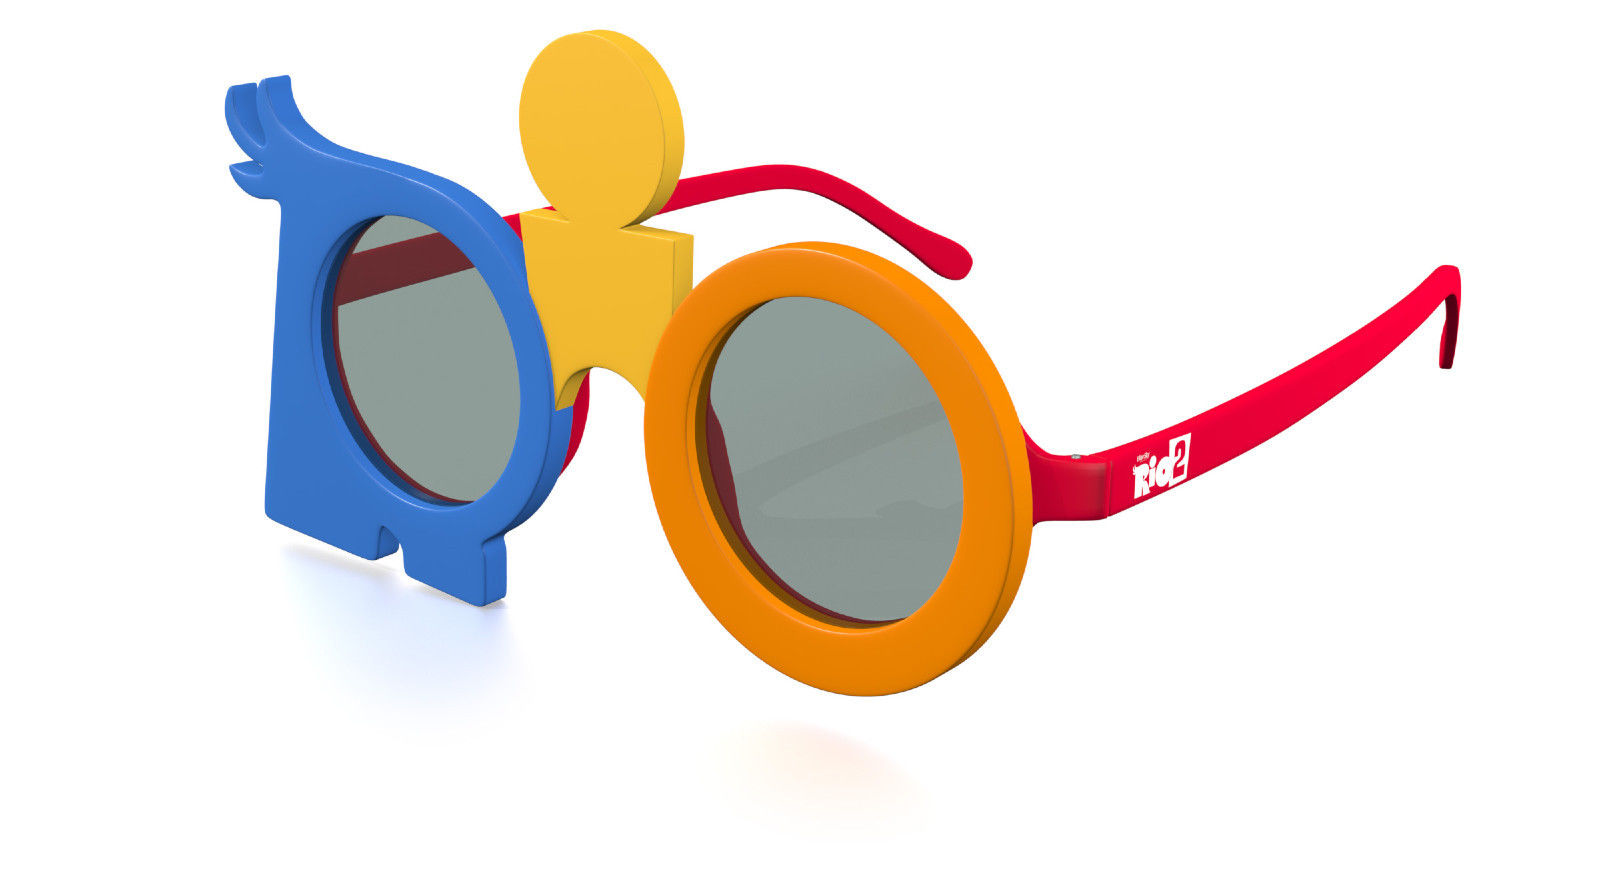 Blu4975/What to know where to find these Rio2 3D glasses?